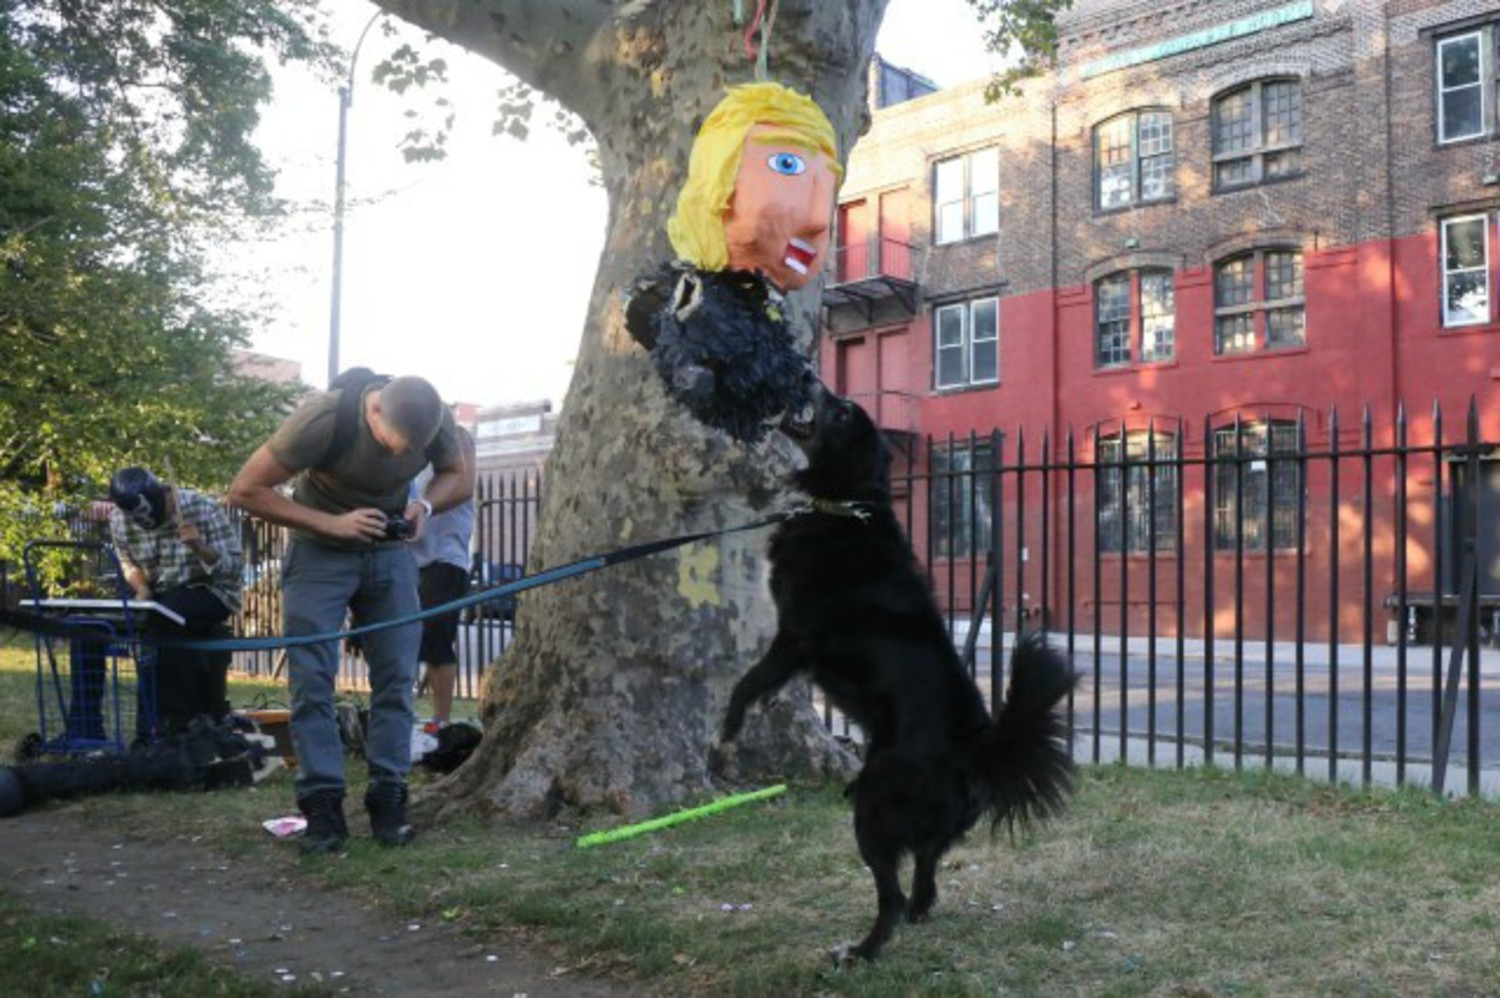 Sweet gig alert: Make $15/hour handing out Donald Trump dog poop bags